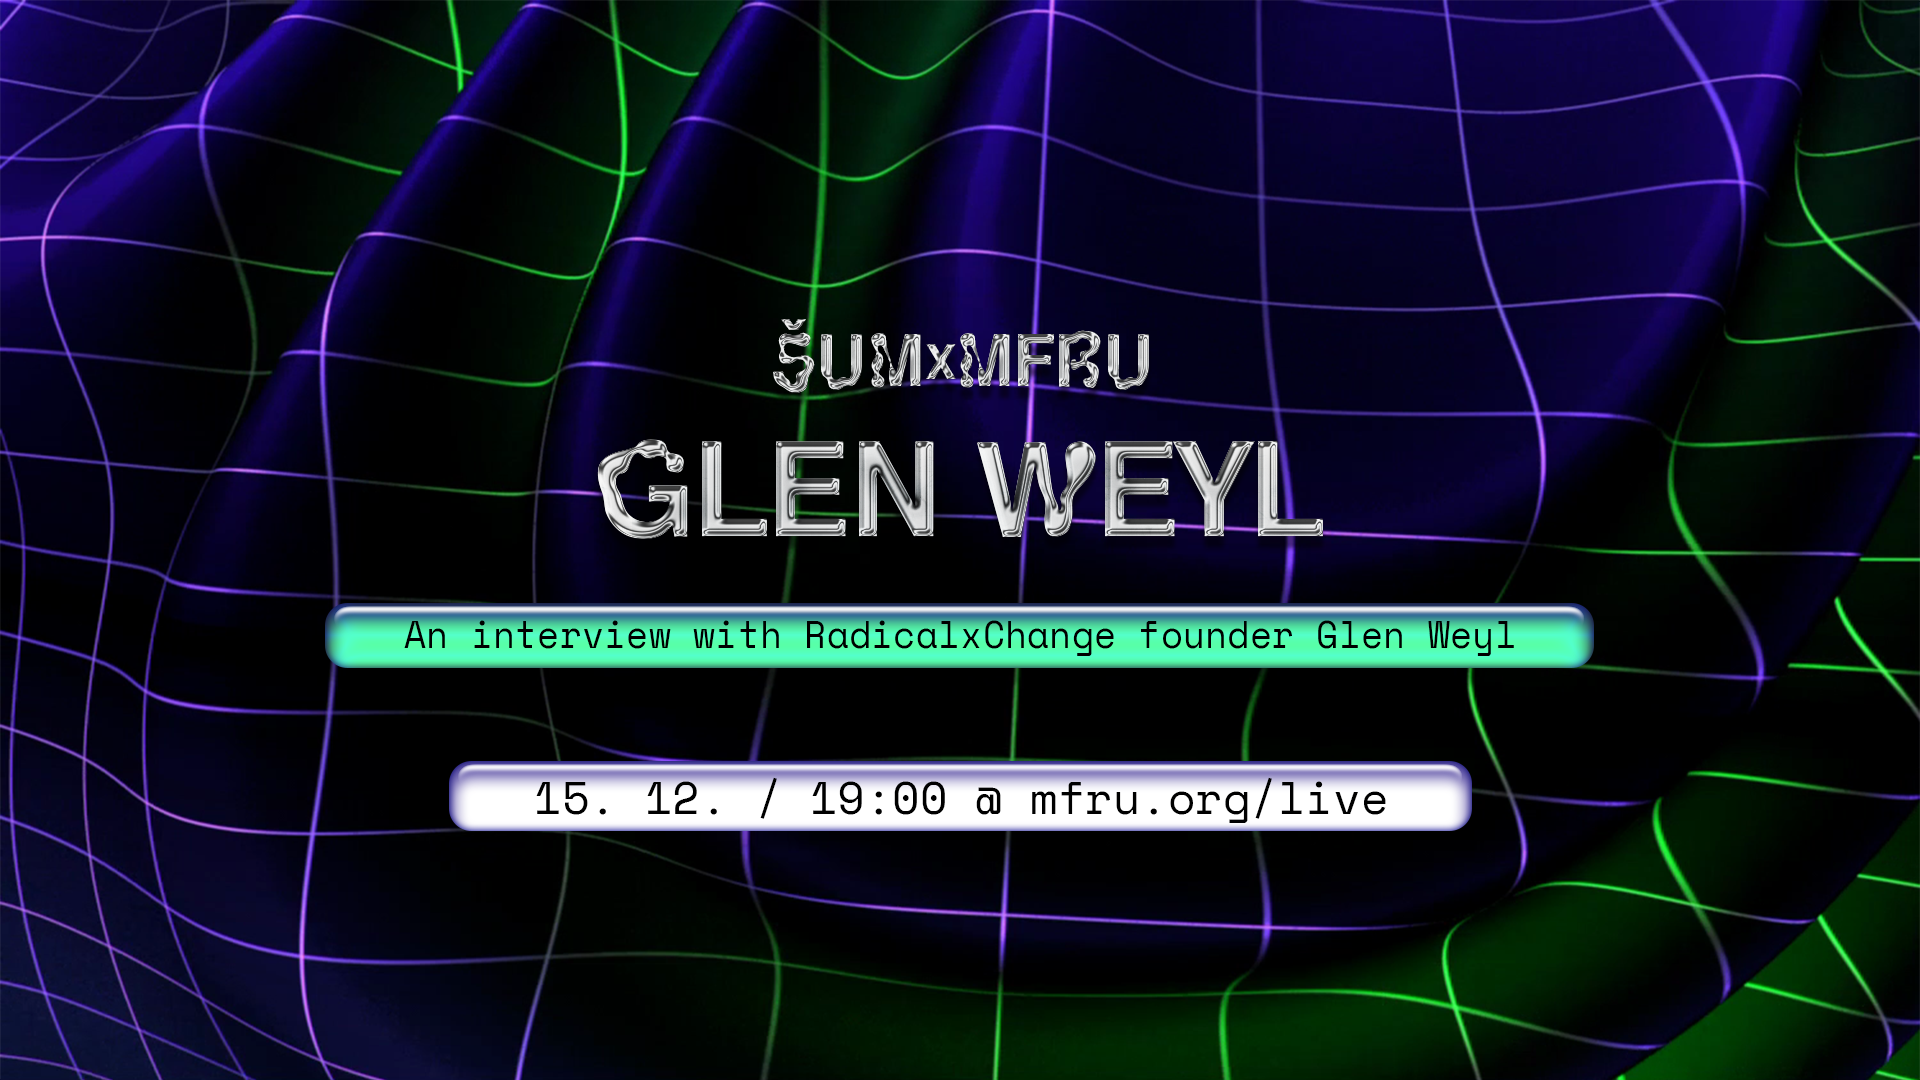 Live / An interview with RadicalxChange founder Glen Weyl